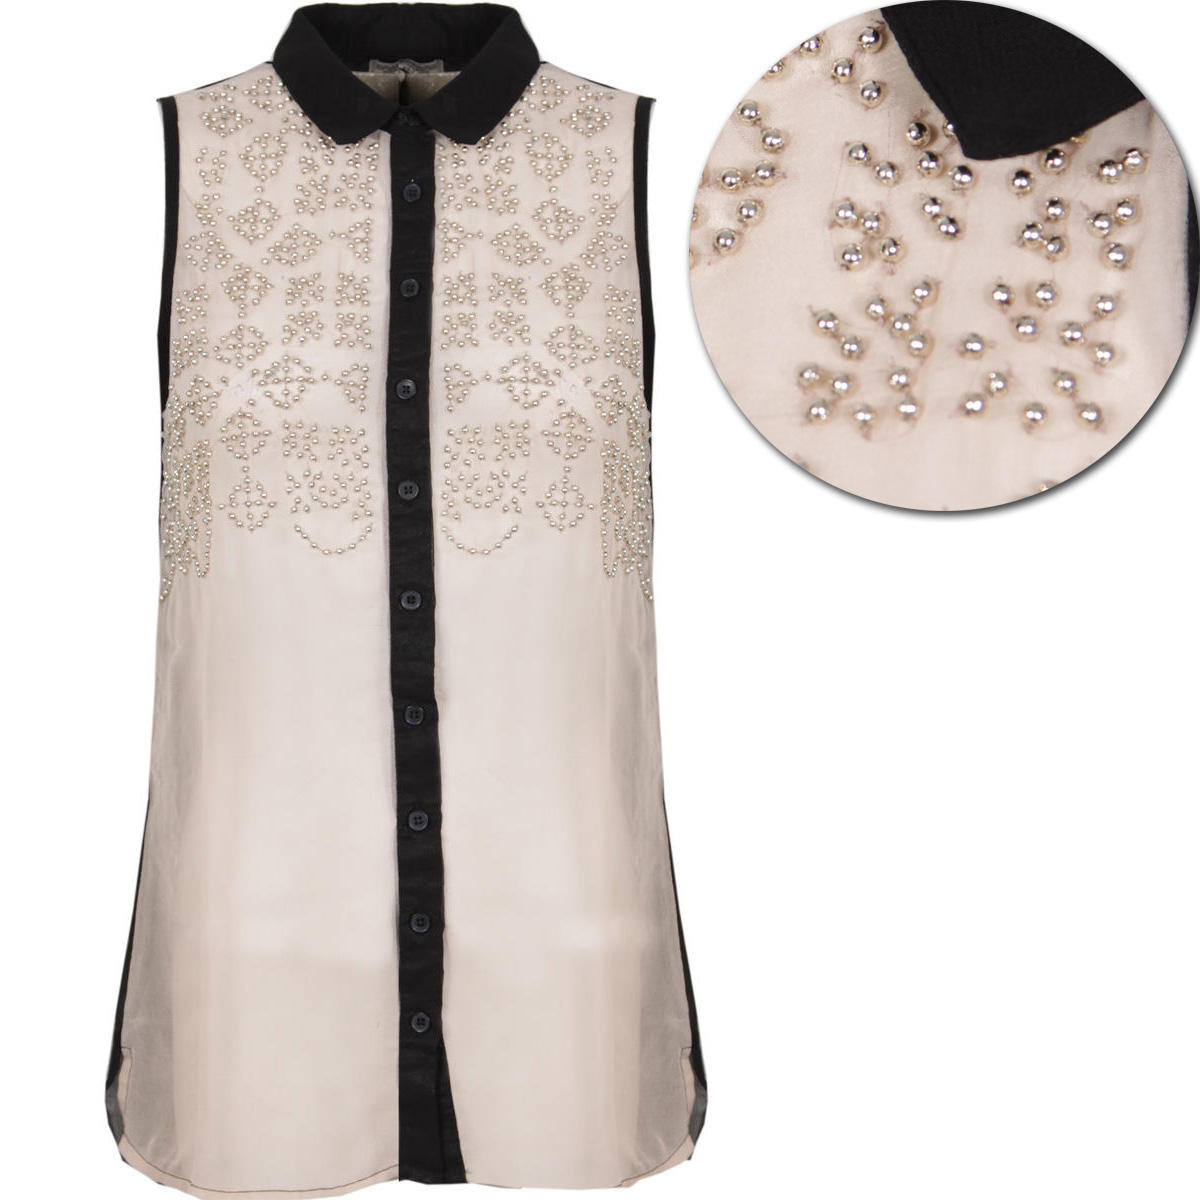 Sheer Embellished Sleeveless Shirt Preview